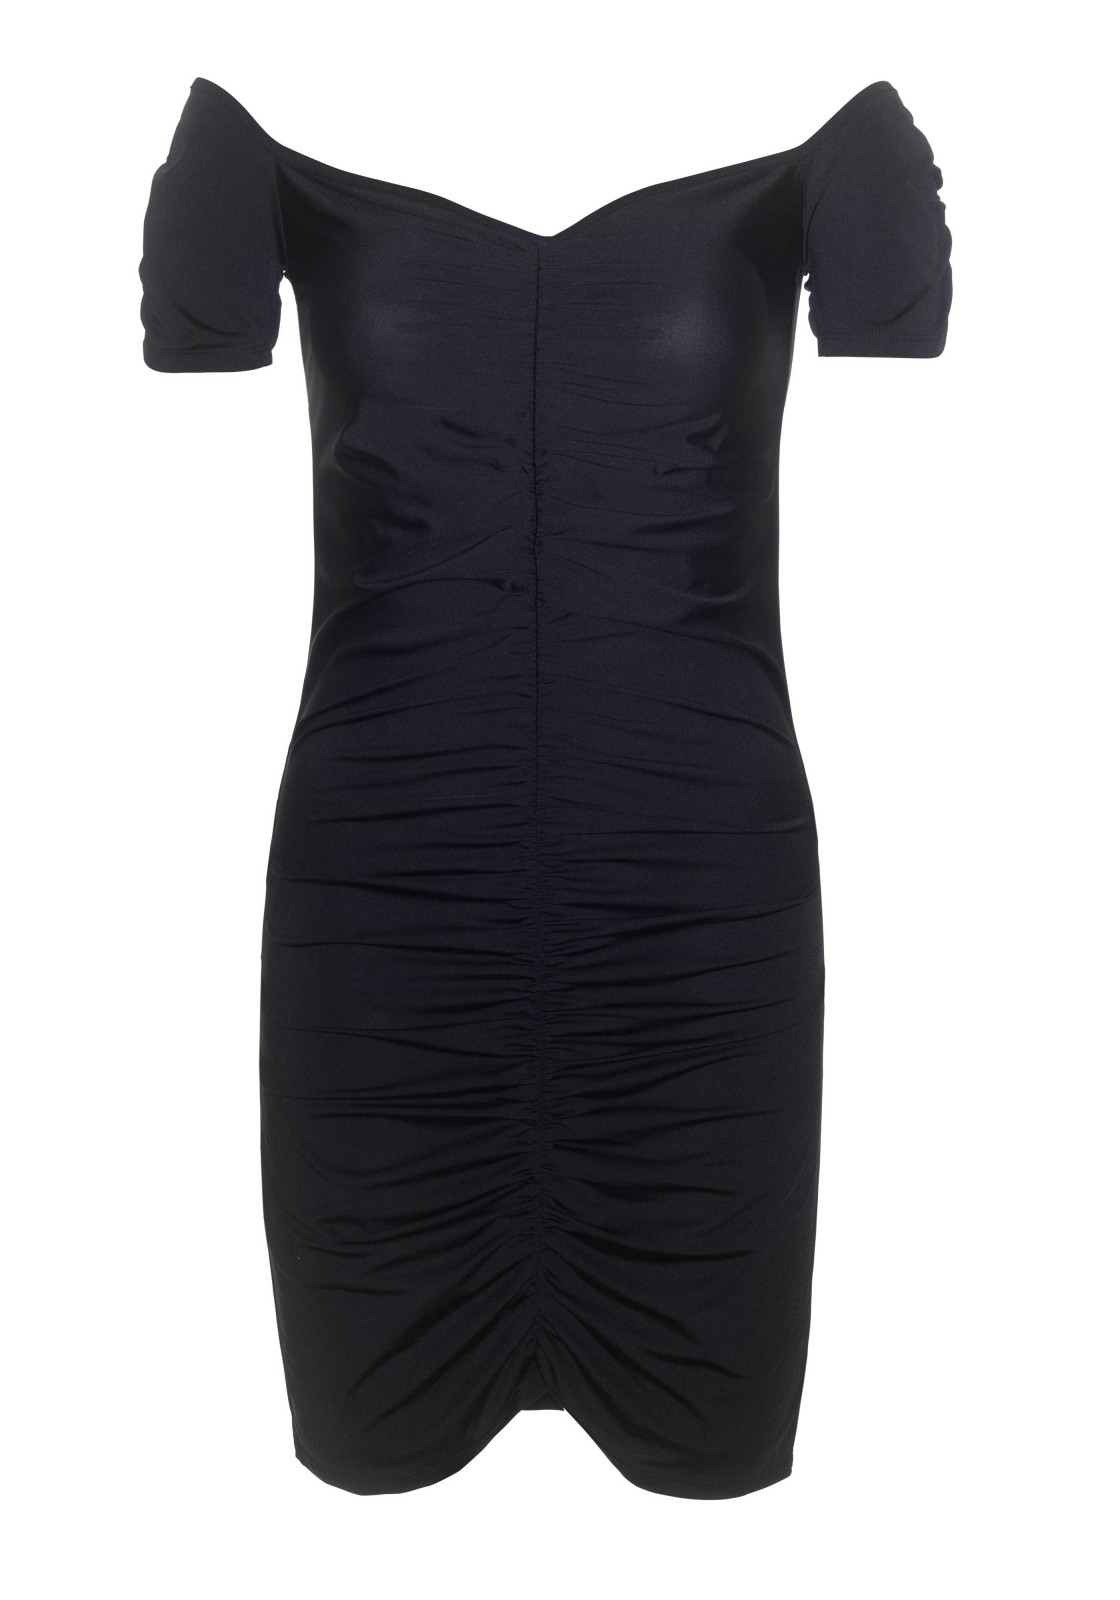 Dress Laverne is a ruched off the shoulder spandex bodycon dress.  The length measured from the shoulder is 80 cm/ 31.5 inch. The model has a length of 182 cm/ 70 inch and is wearing a size S.